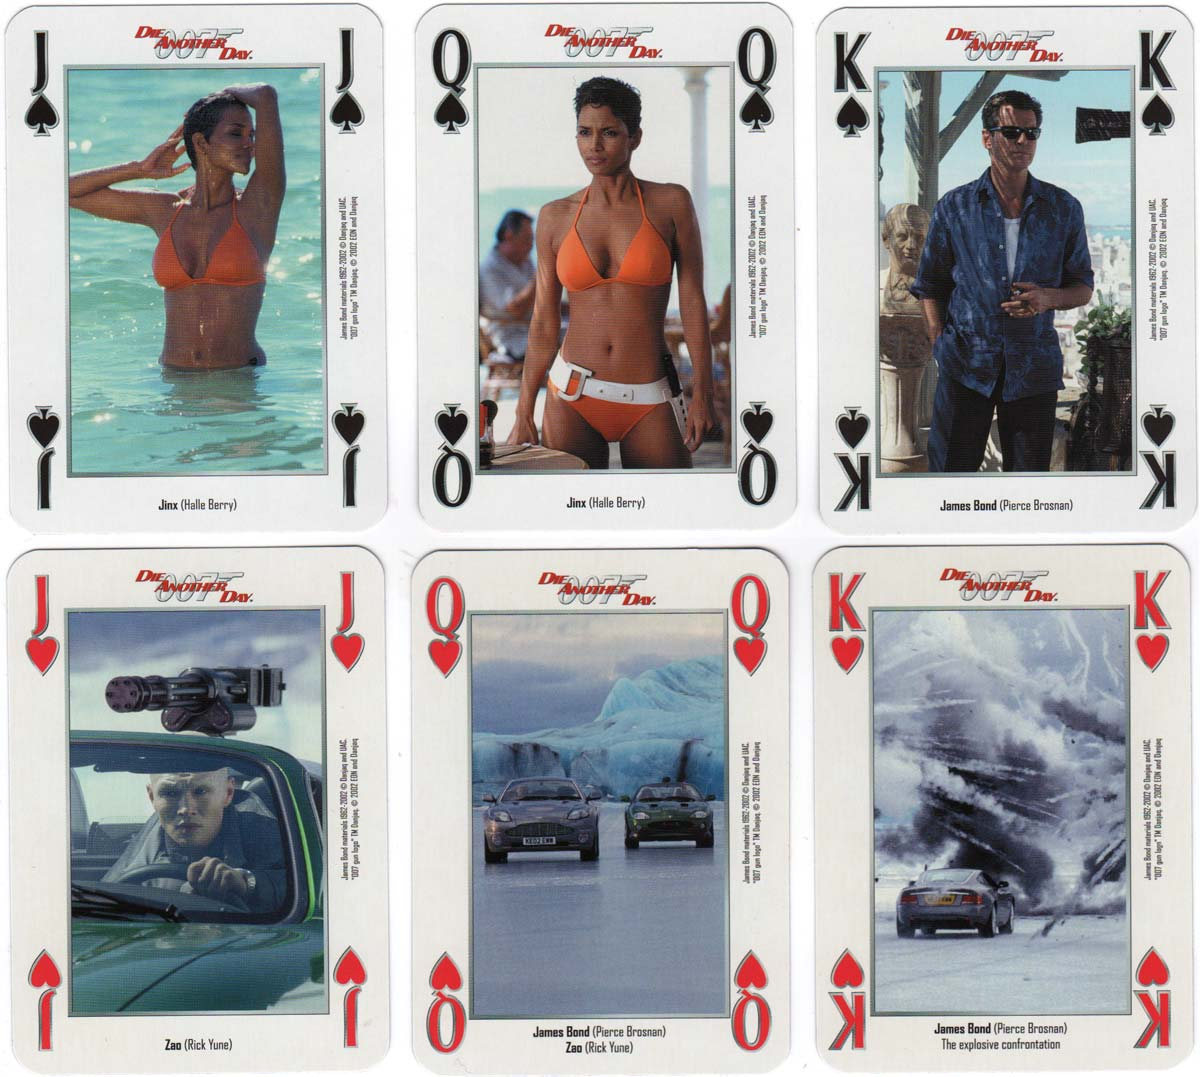 """007 Die Another Day"" themed playing cards printed by Carta Mundi, 2002"